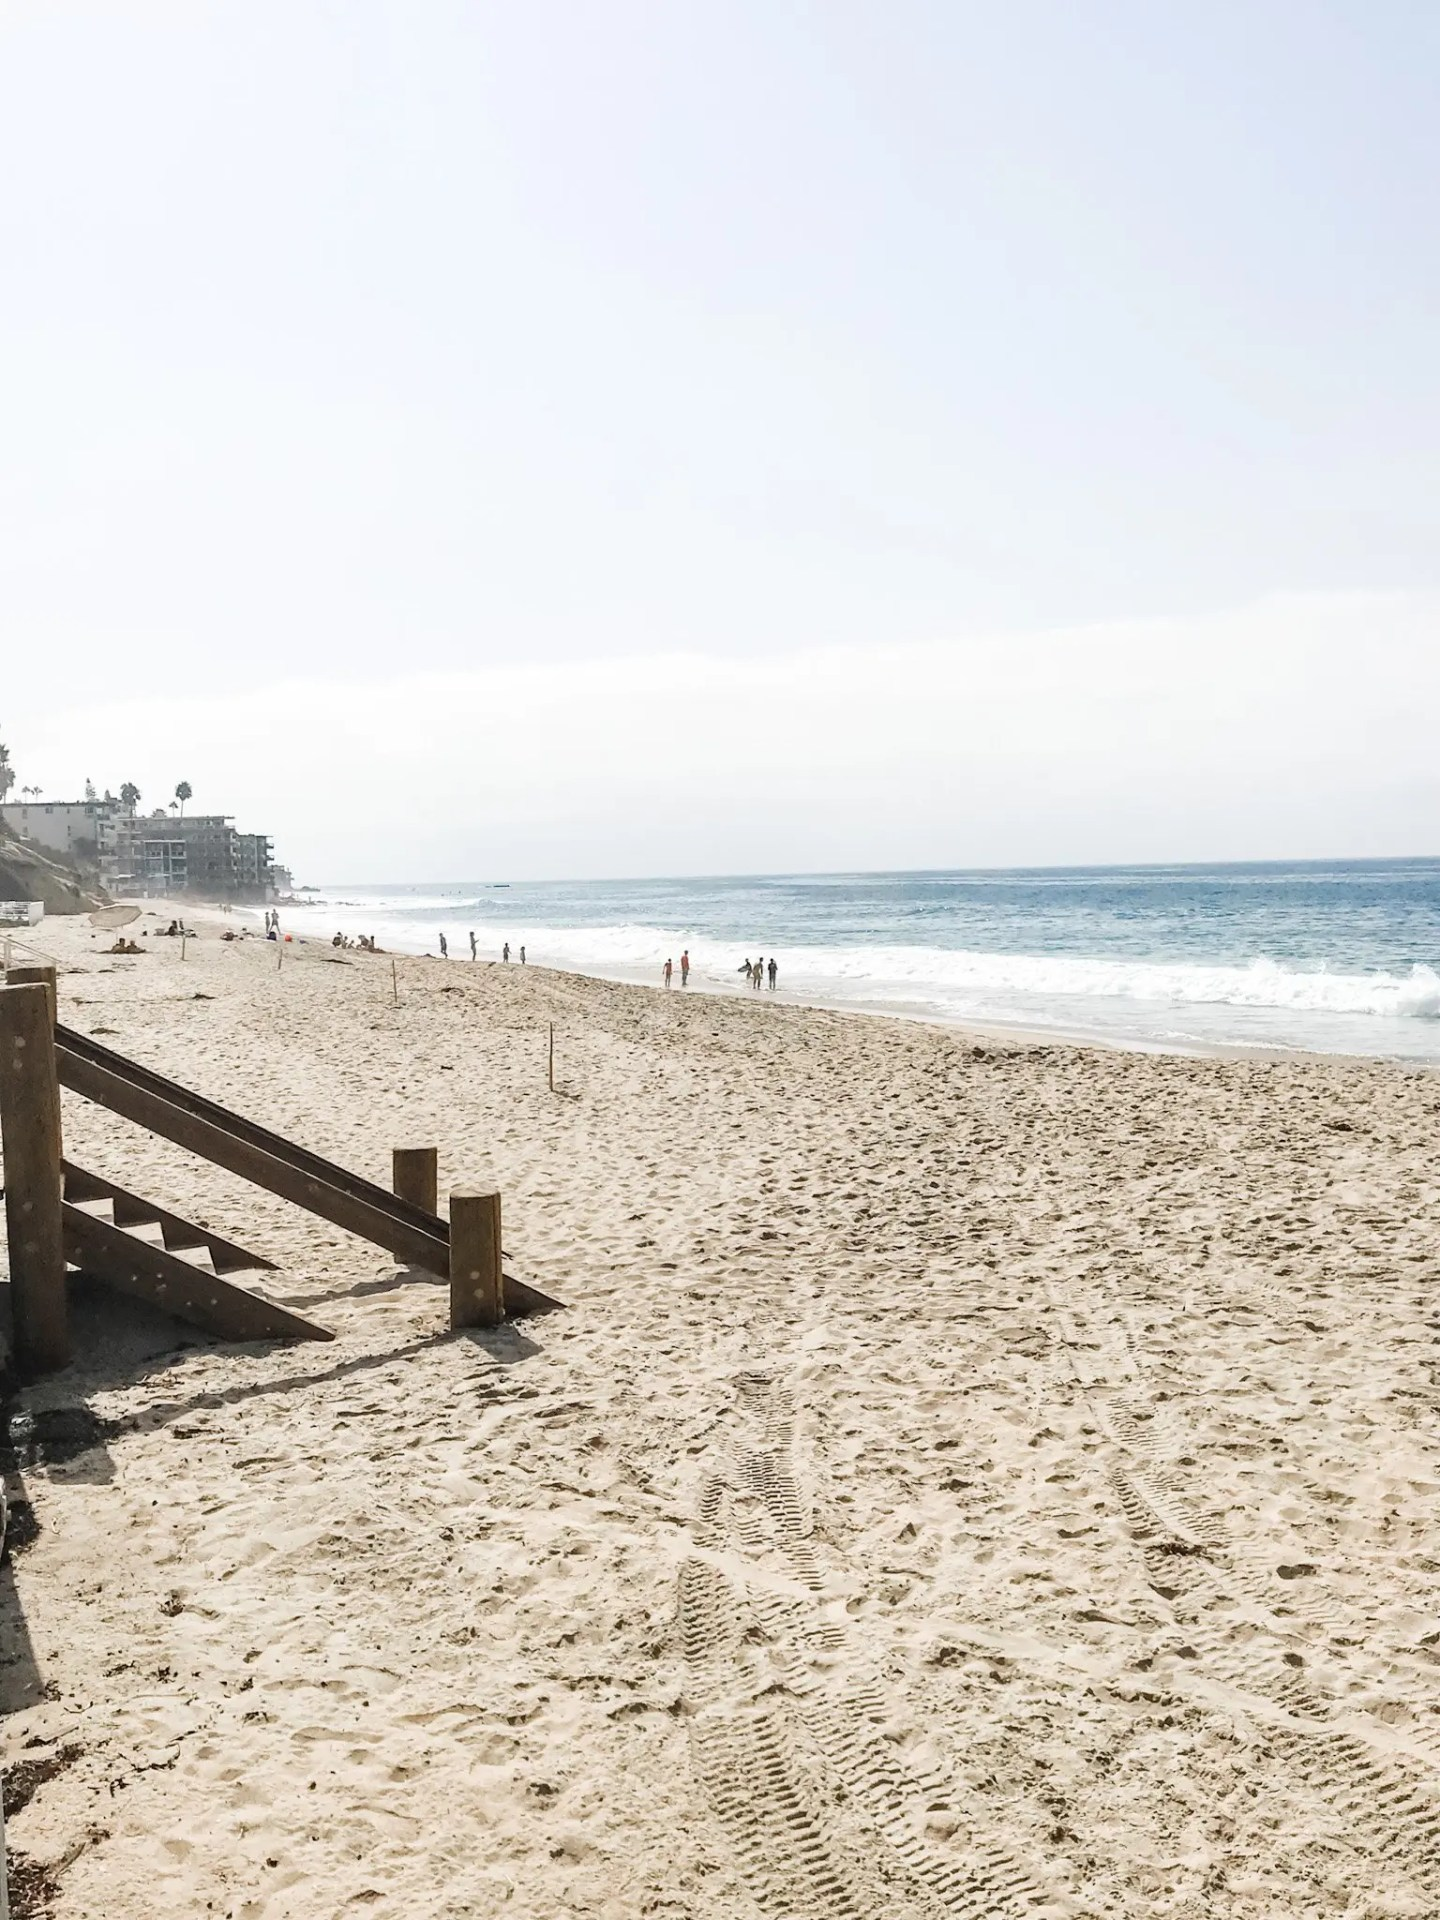 """Stretched our legs at """"Main Beach"""" in Laguna Beach, one of the stops on our road trip to southern California."""